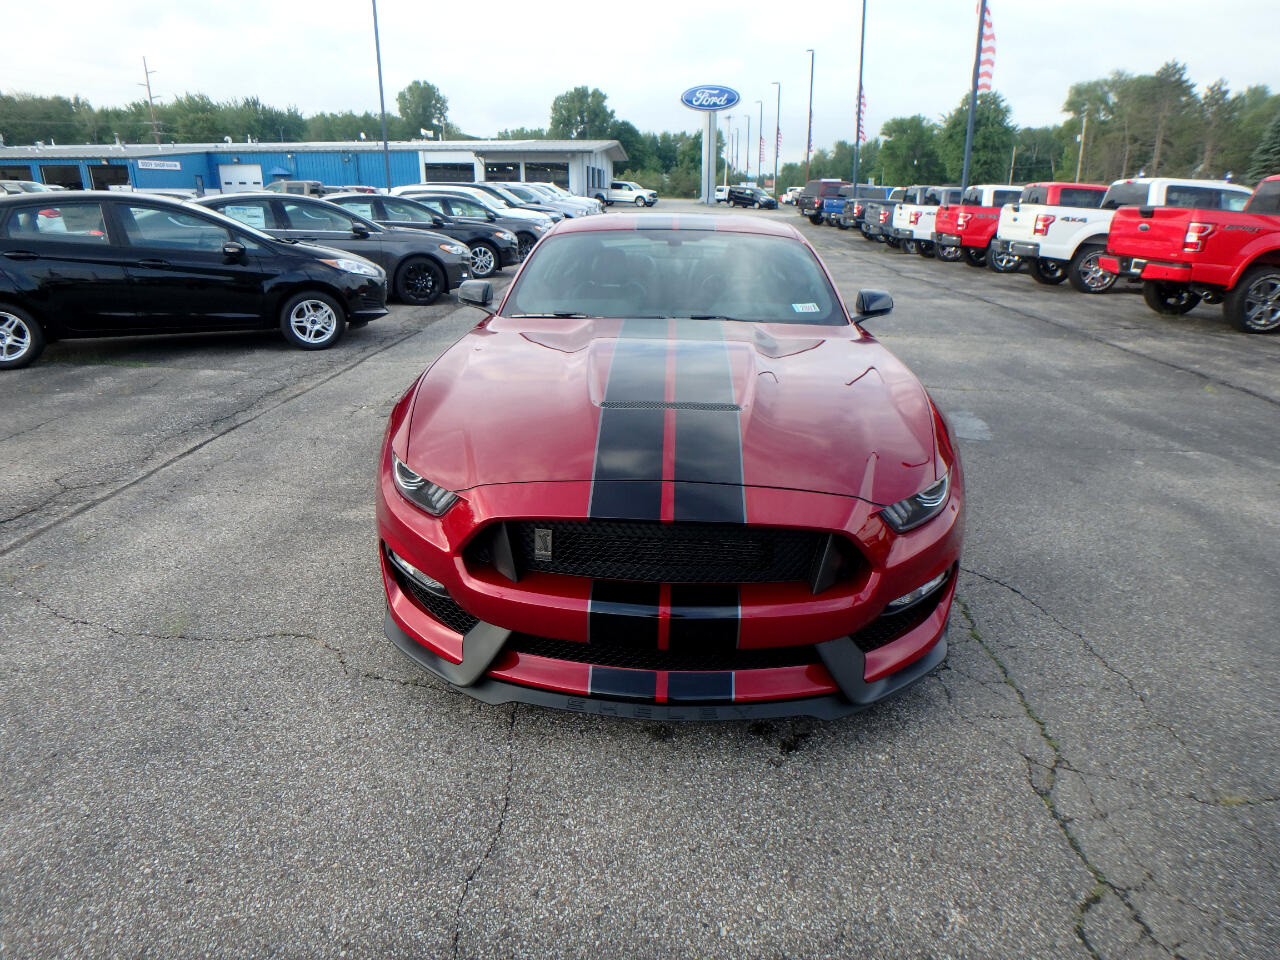 Ford Mustang Shelby GT350 Fastback 2019